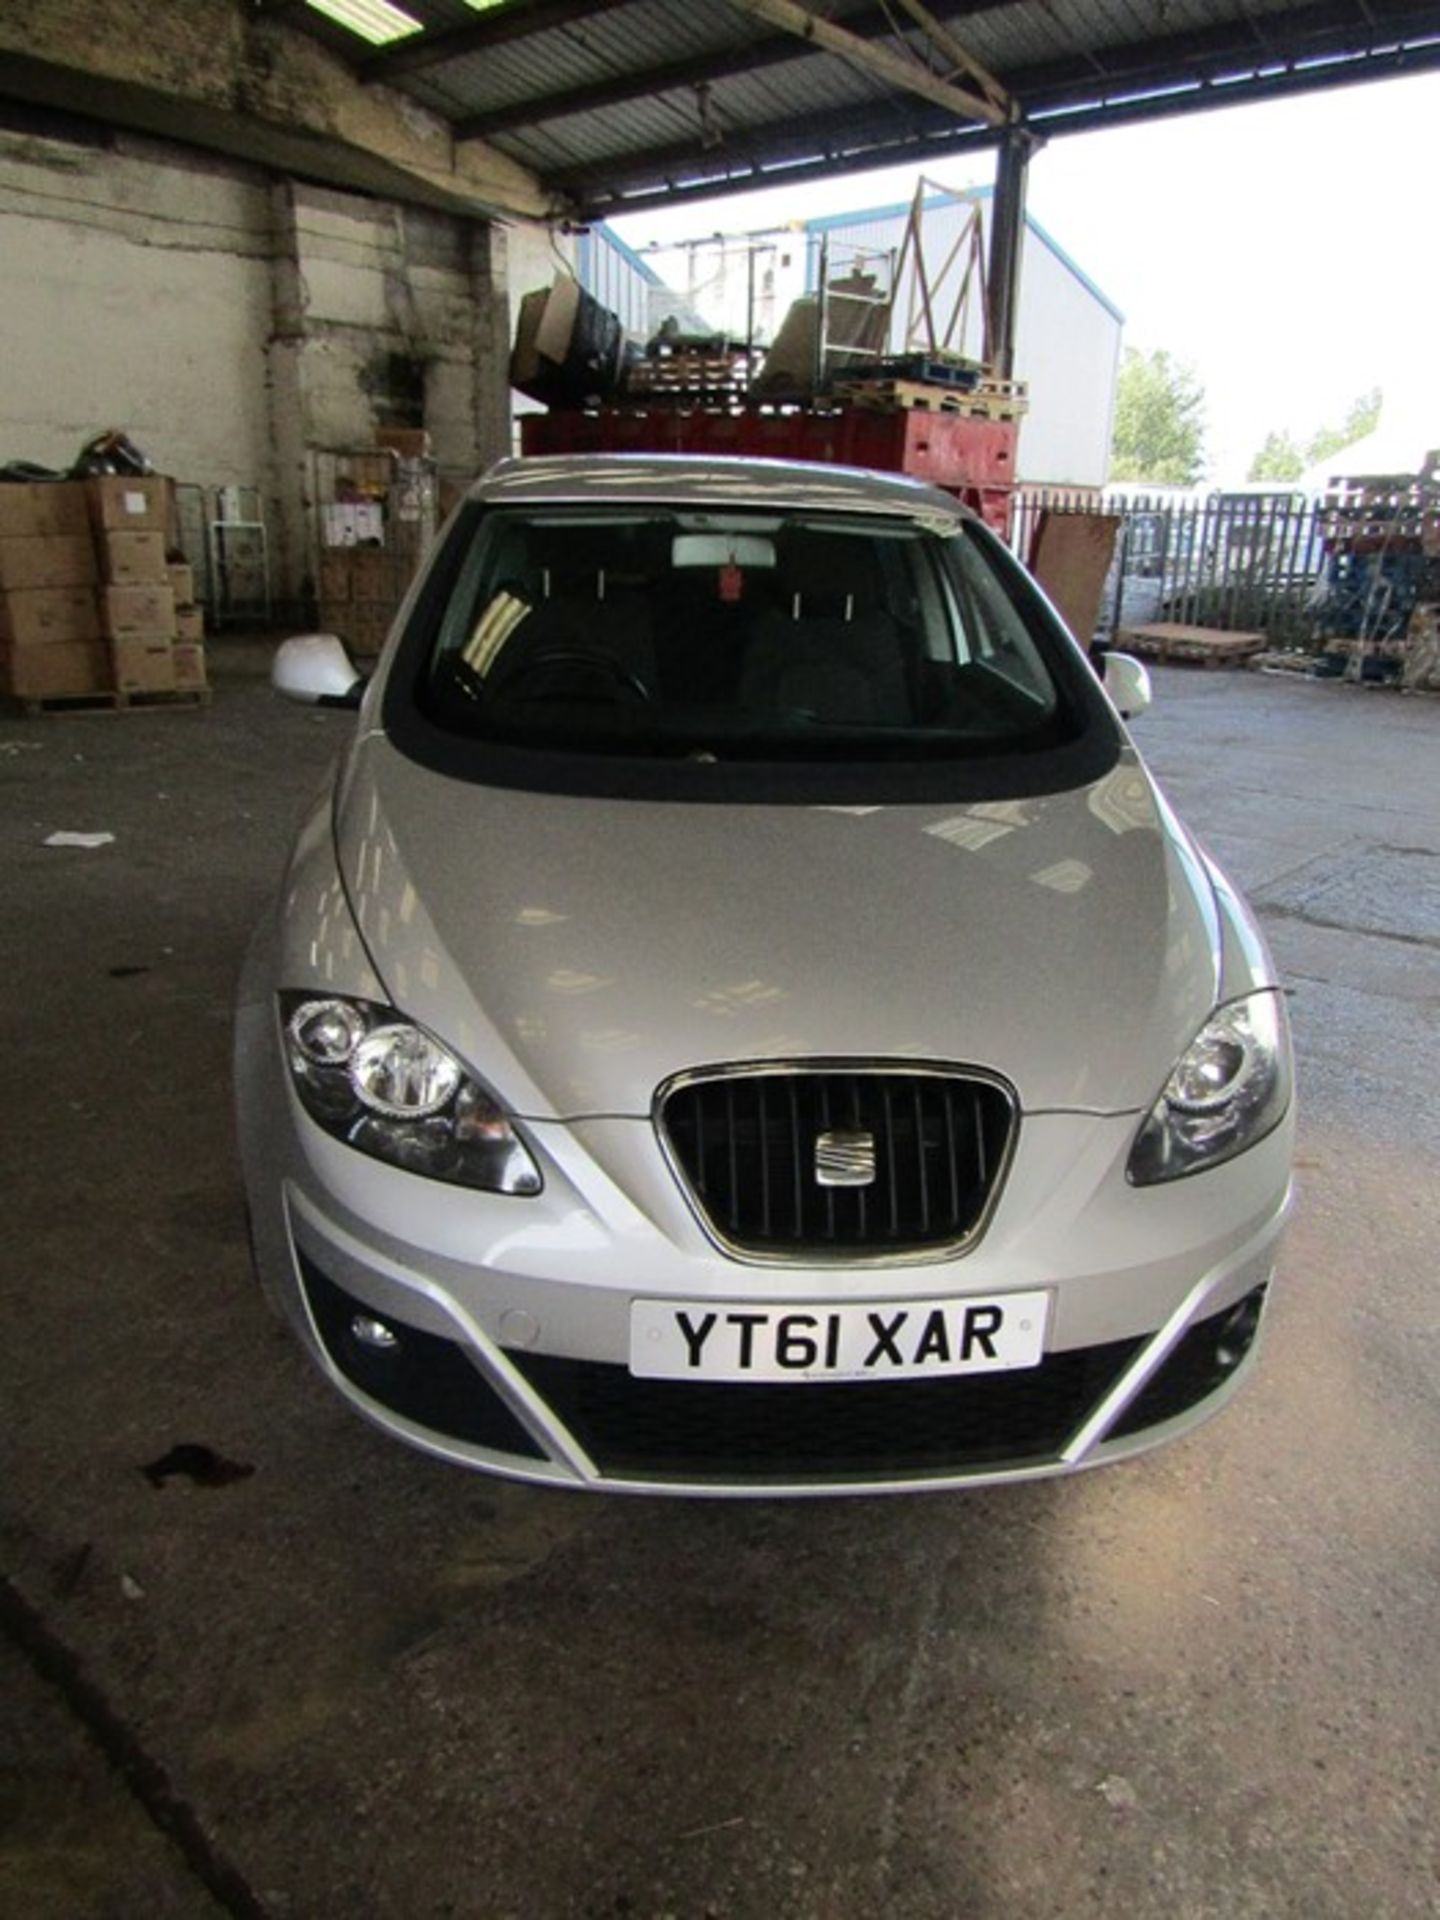 2011 Seat Althea SE CR TDI Auto, 1.6TDI, 47,678 miles (unchecked but appears to be inline with the